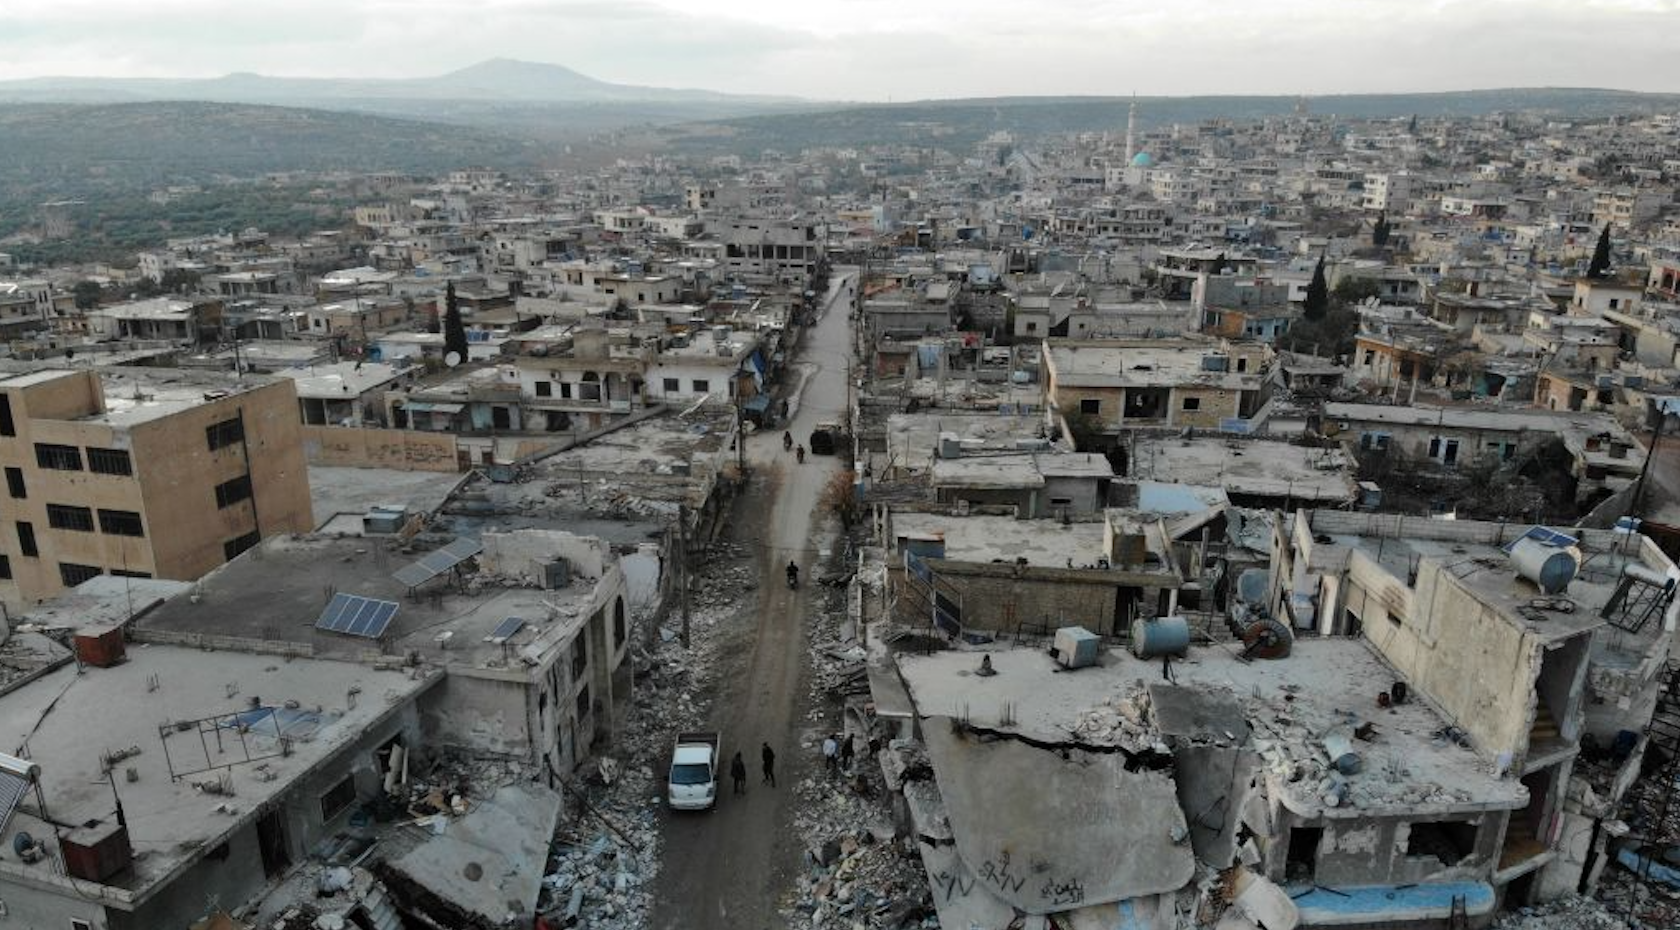 An aerial view taken on December 8, 2019 shows the damage caused by reported Syrian regime and Russian air strikes the previous day in the town of Al-Bara in the south of Syria's Idlib province, that killed at least four civilans, including a child and wounding several others.